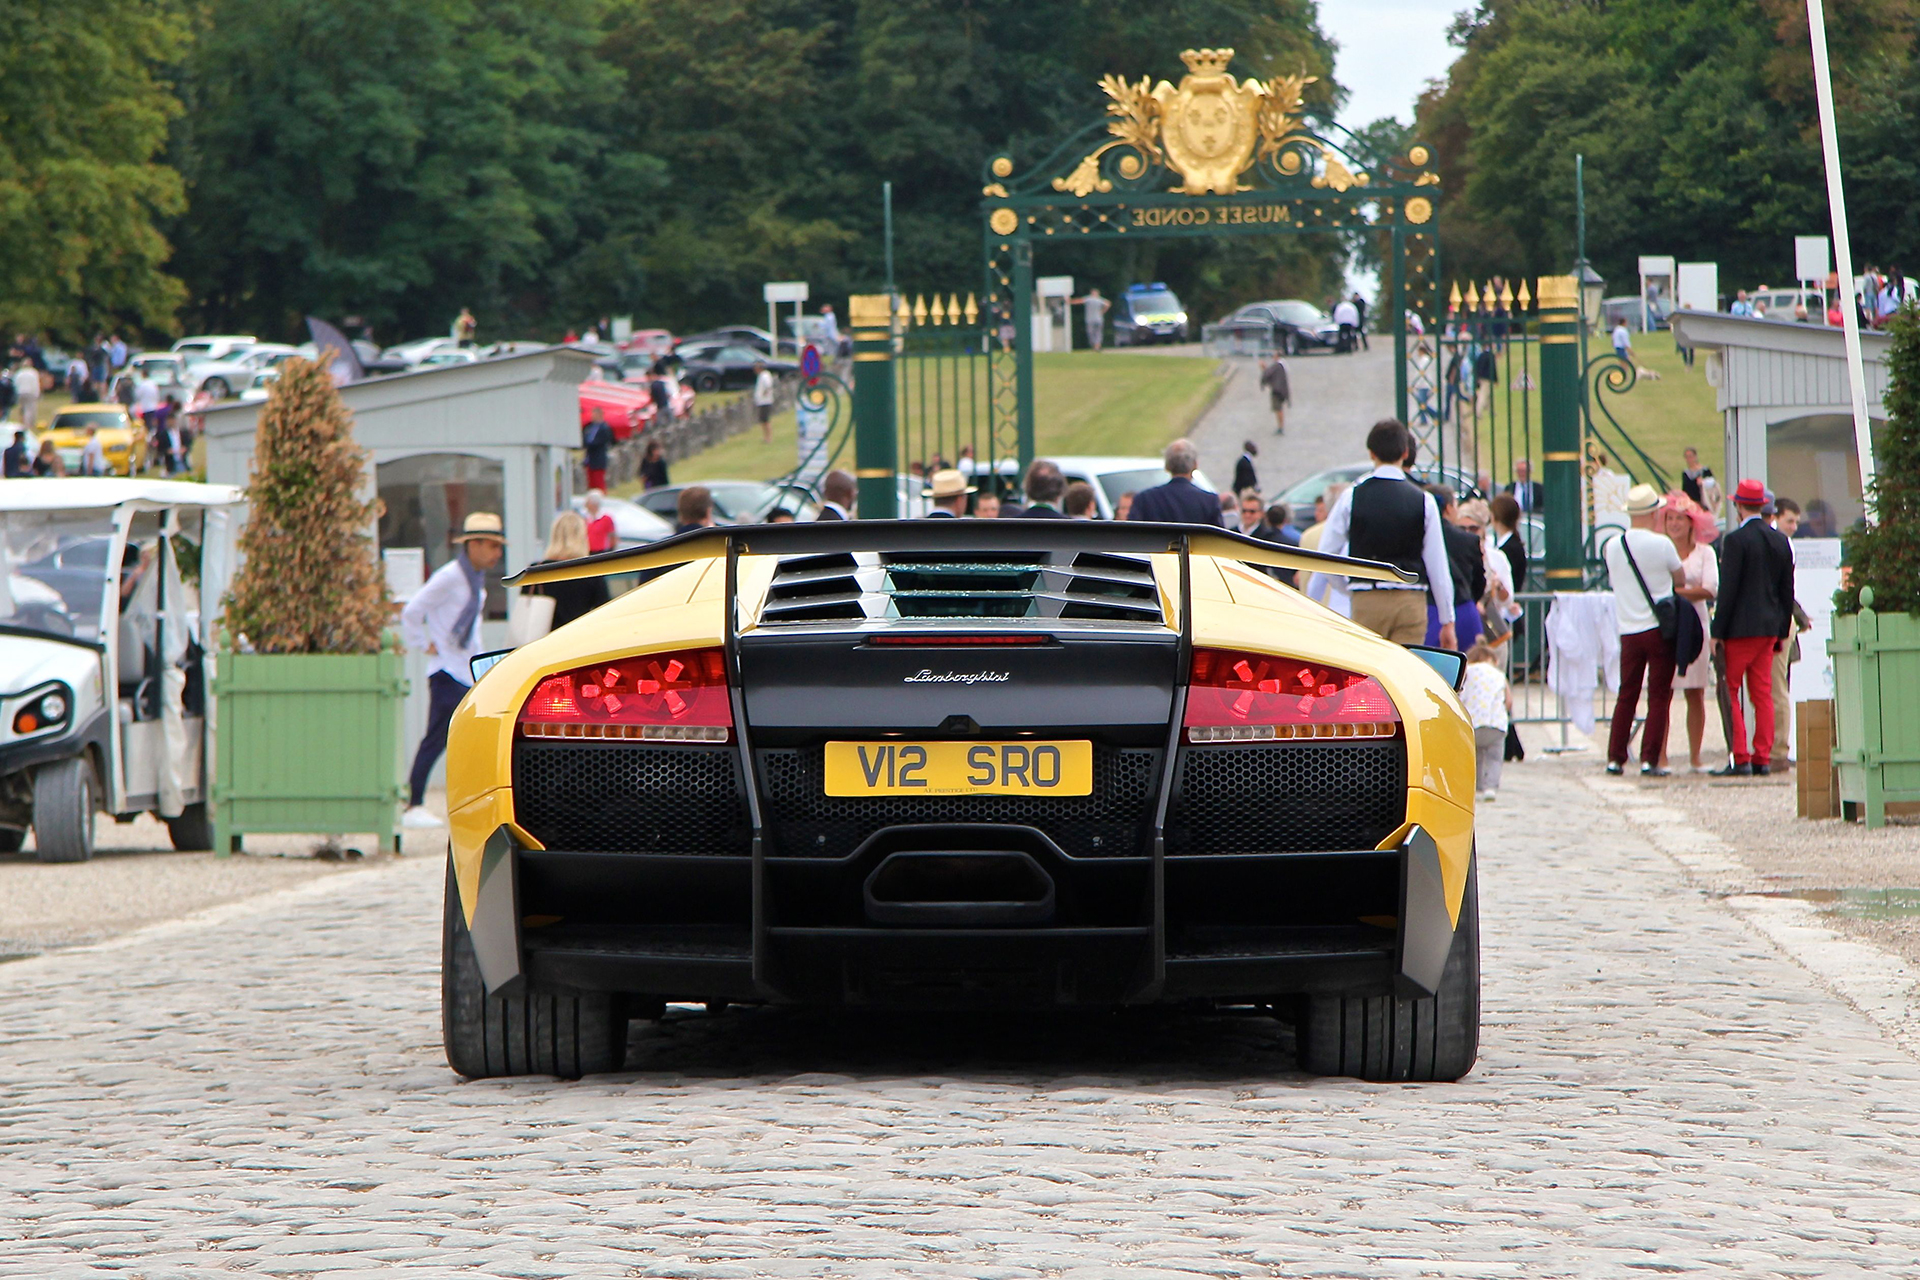 Lamborghini Murcielago SV - Chantilly - 2016 - photo Ludo Ferrari